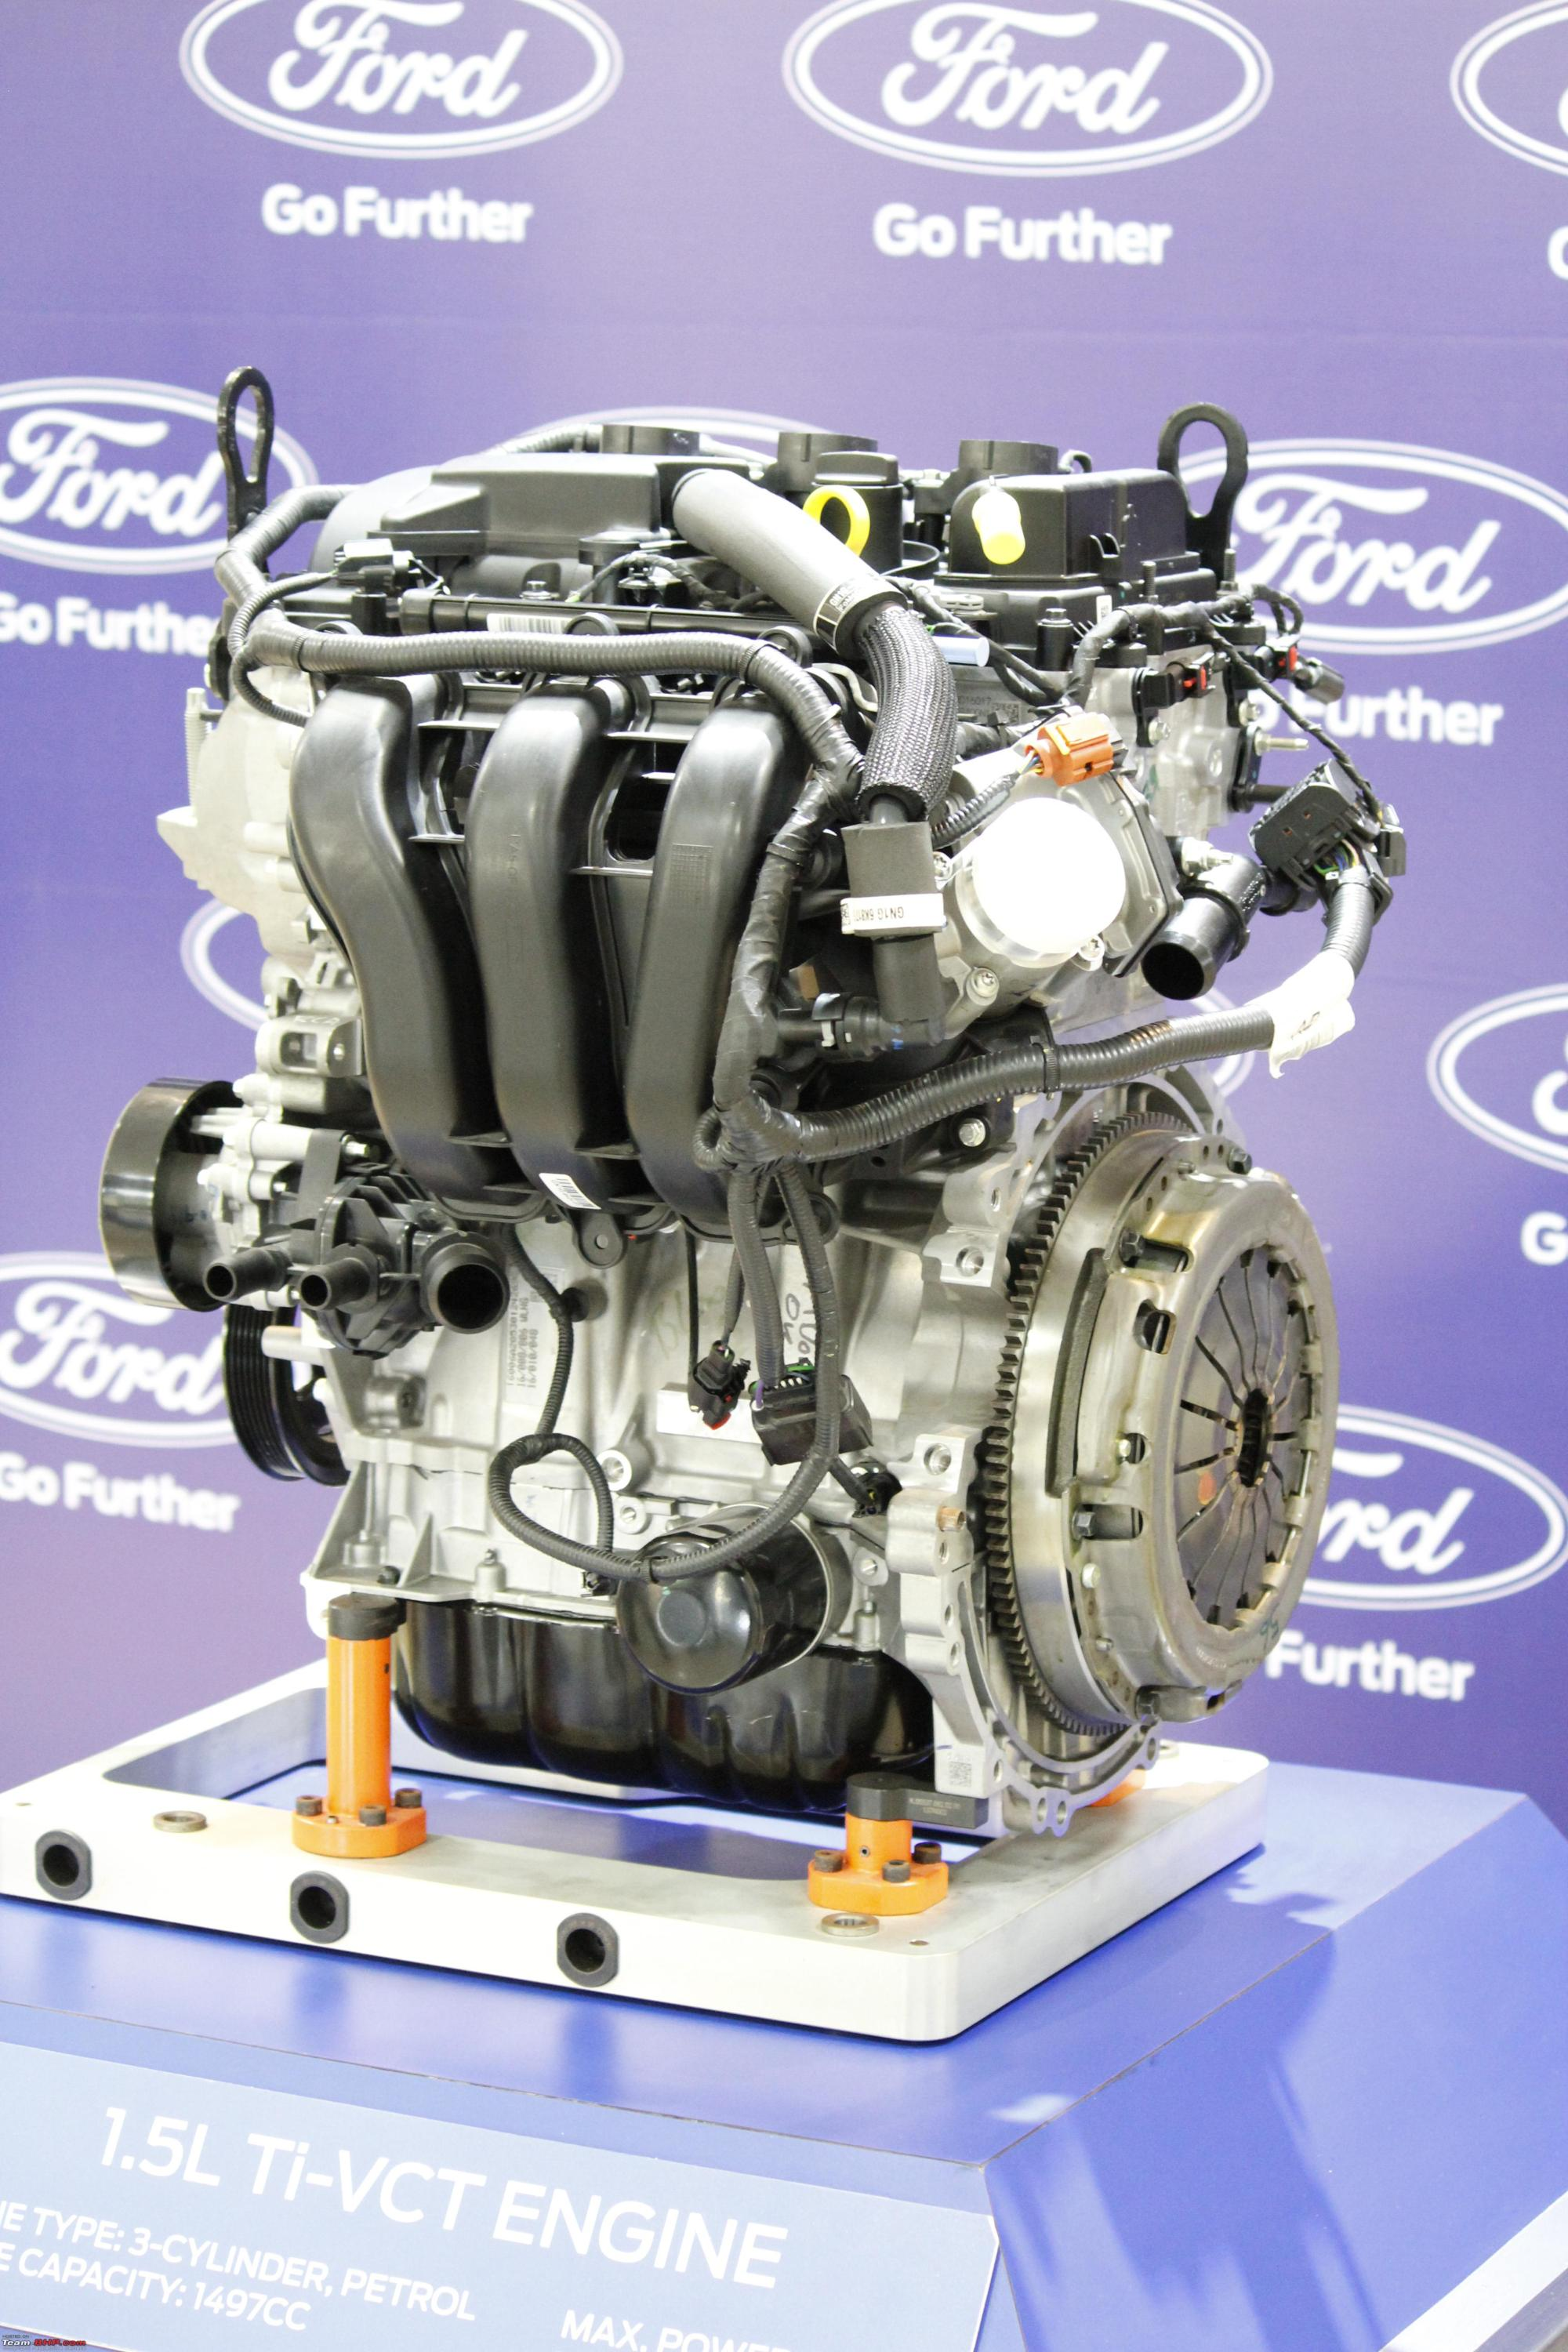 hight resolution of a close look at ford s new 1 5l 3 cylinder dragon petrol engine engine